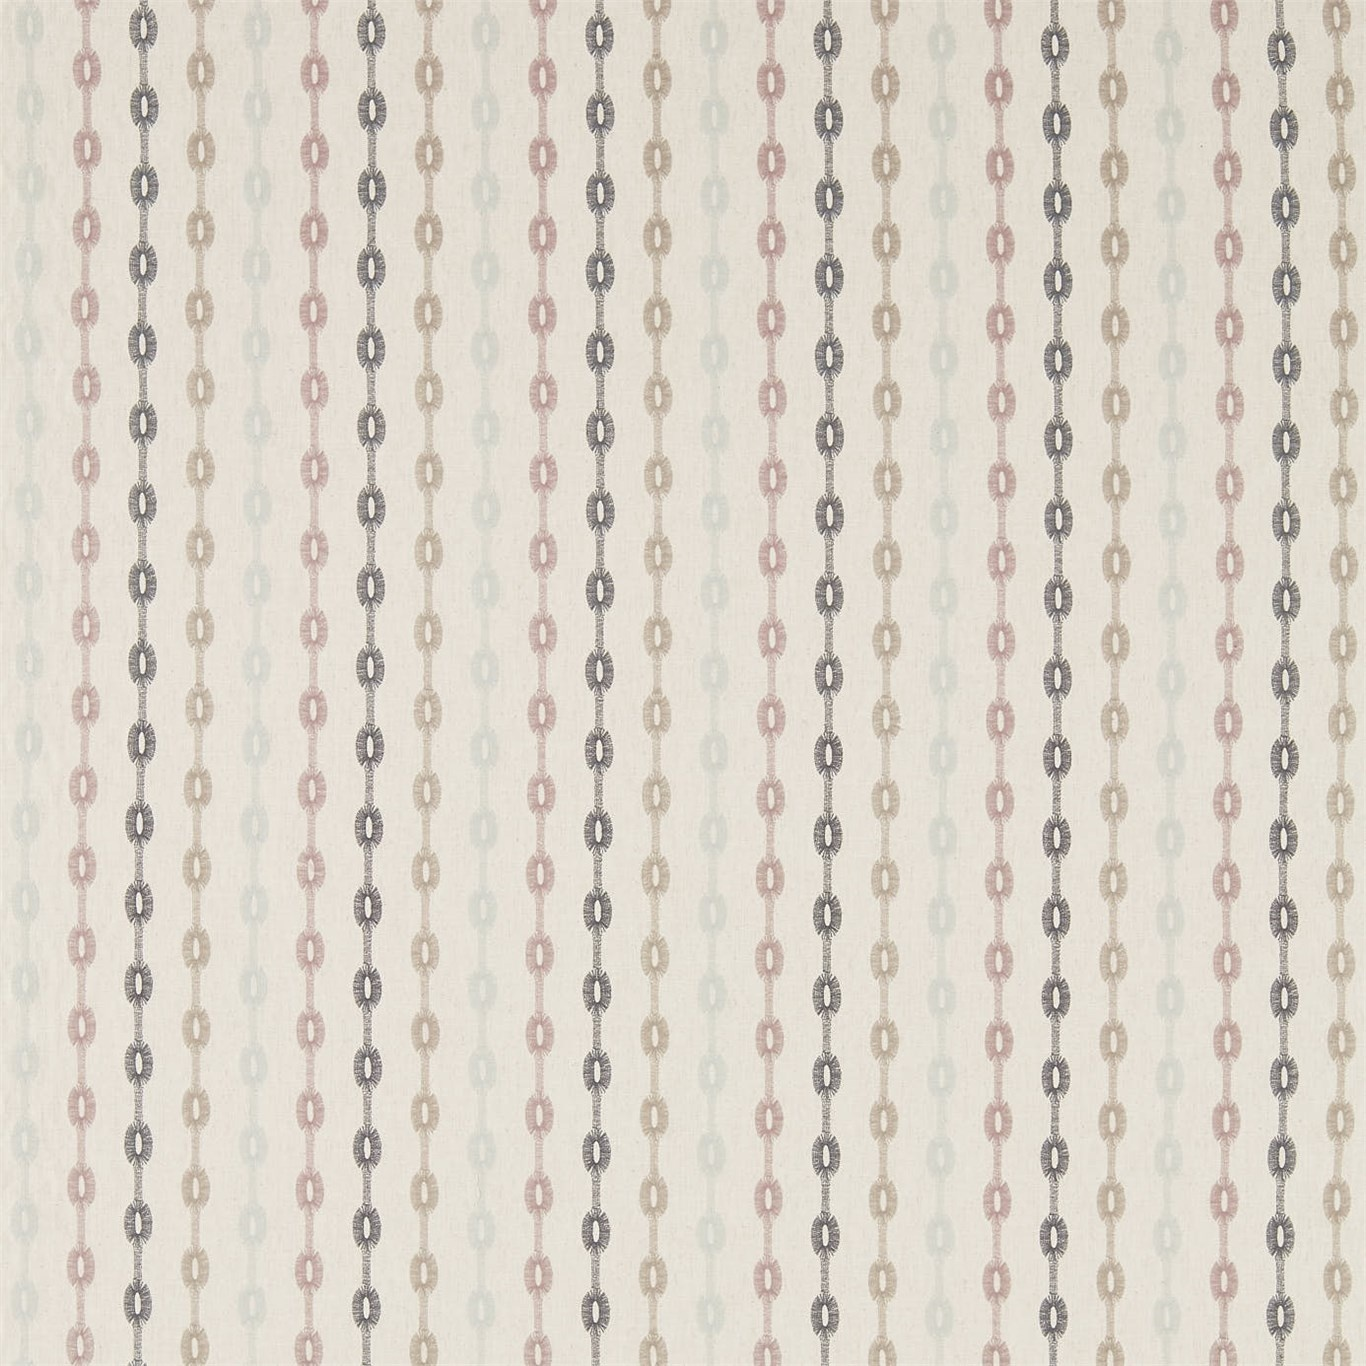 Image of Sanderson Home Shaker Stripe Mineral Curtain Fabric 235888